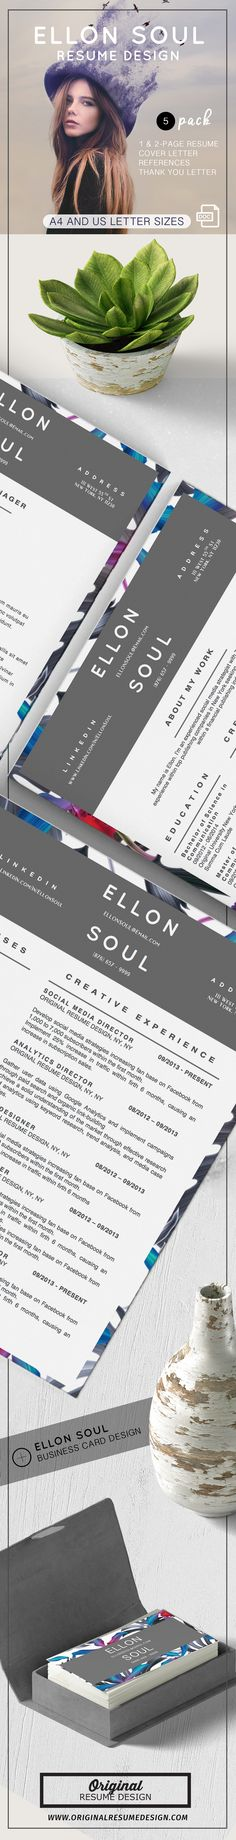 Beautiful and modern resume design. Ellon Soul features 5 templates for Microsoft Word: 1 and 2 Page resume templates, matching cover letter, references, and thank you letter. All templates come in two sizes: A4 and U.S. Letter size.